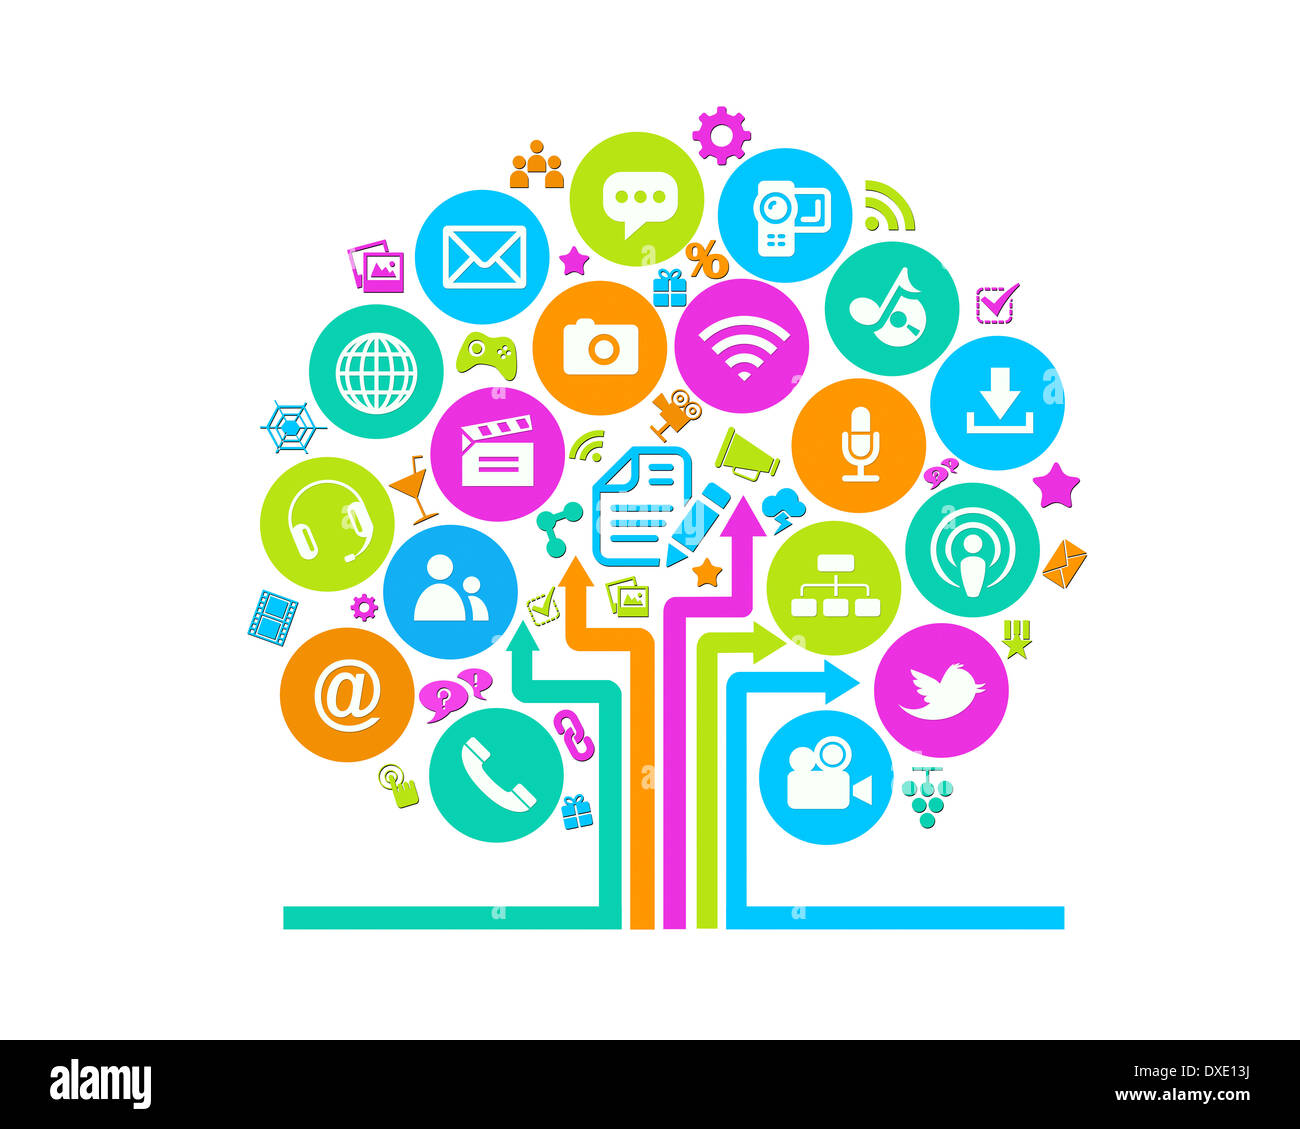 social media tree icons white background stock photo 67920374 alamy